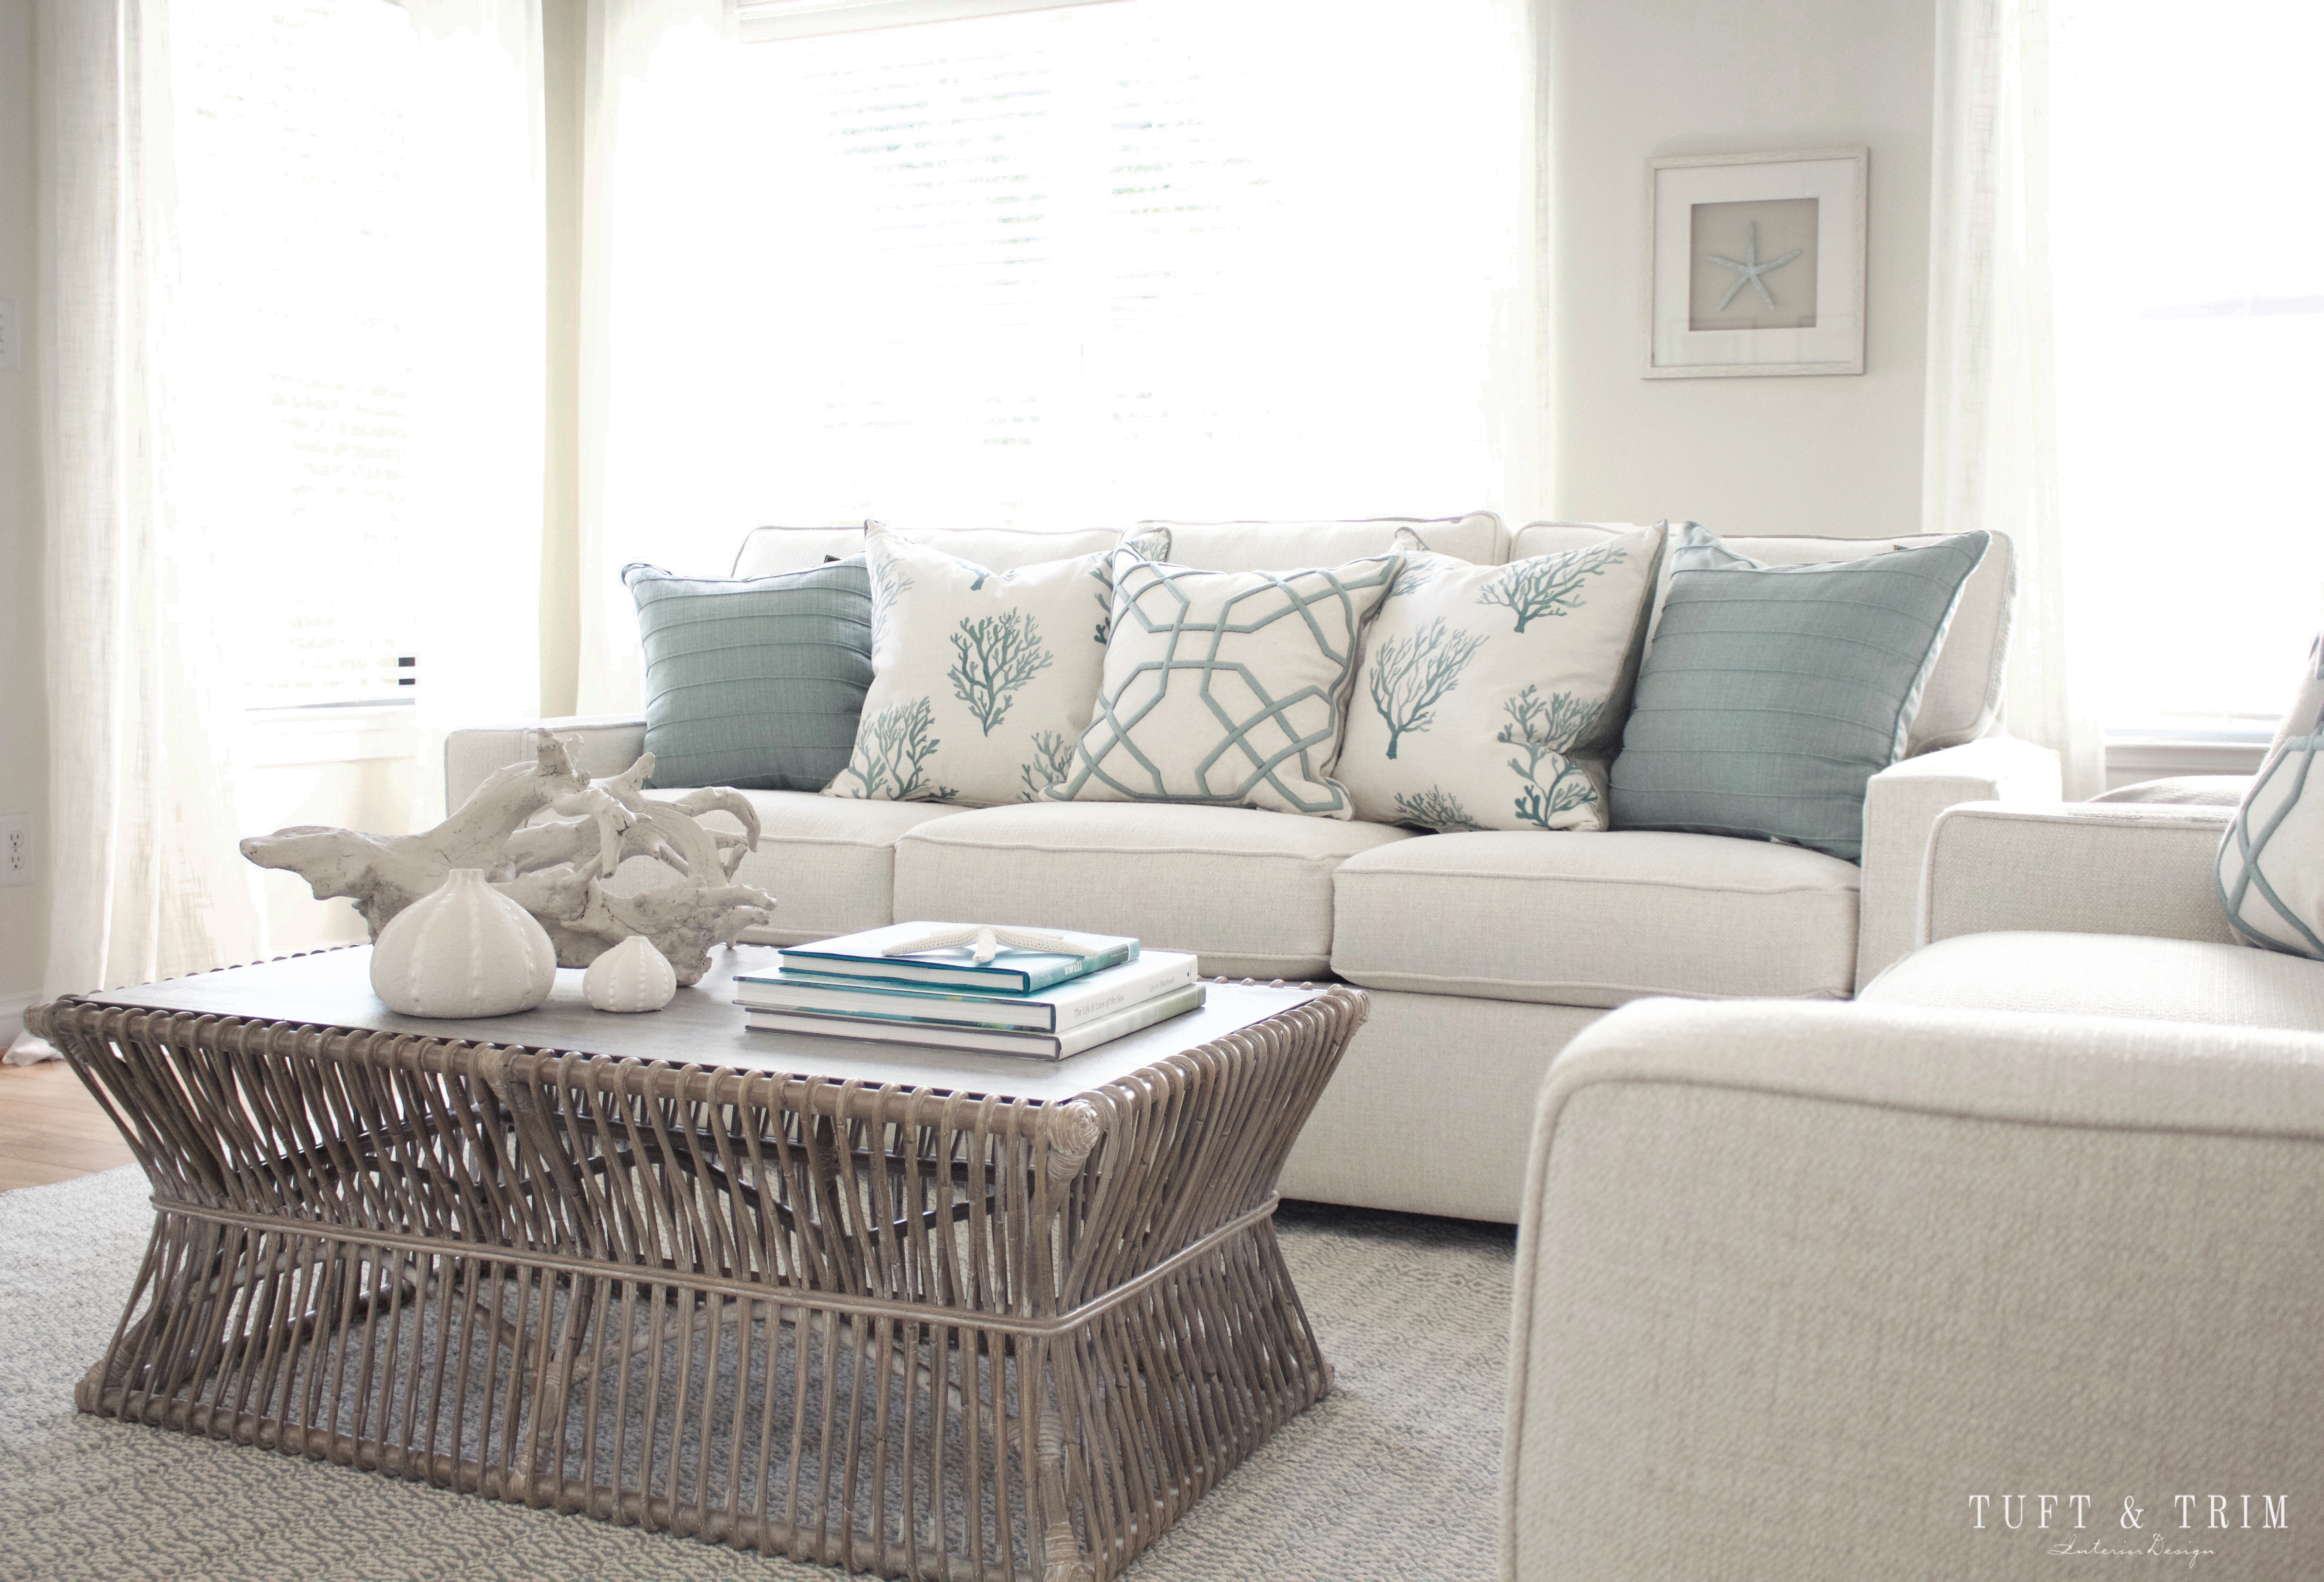 Coastal Contemporary Living Room Reveal Tuft & Trim